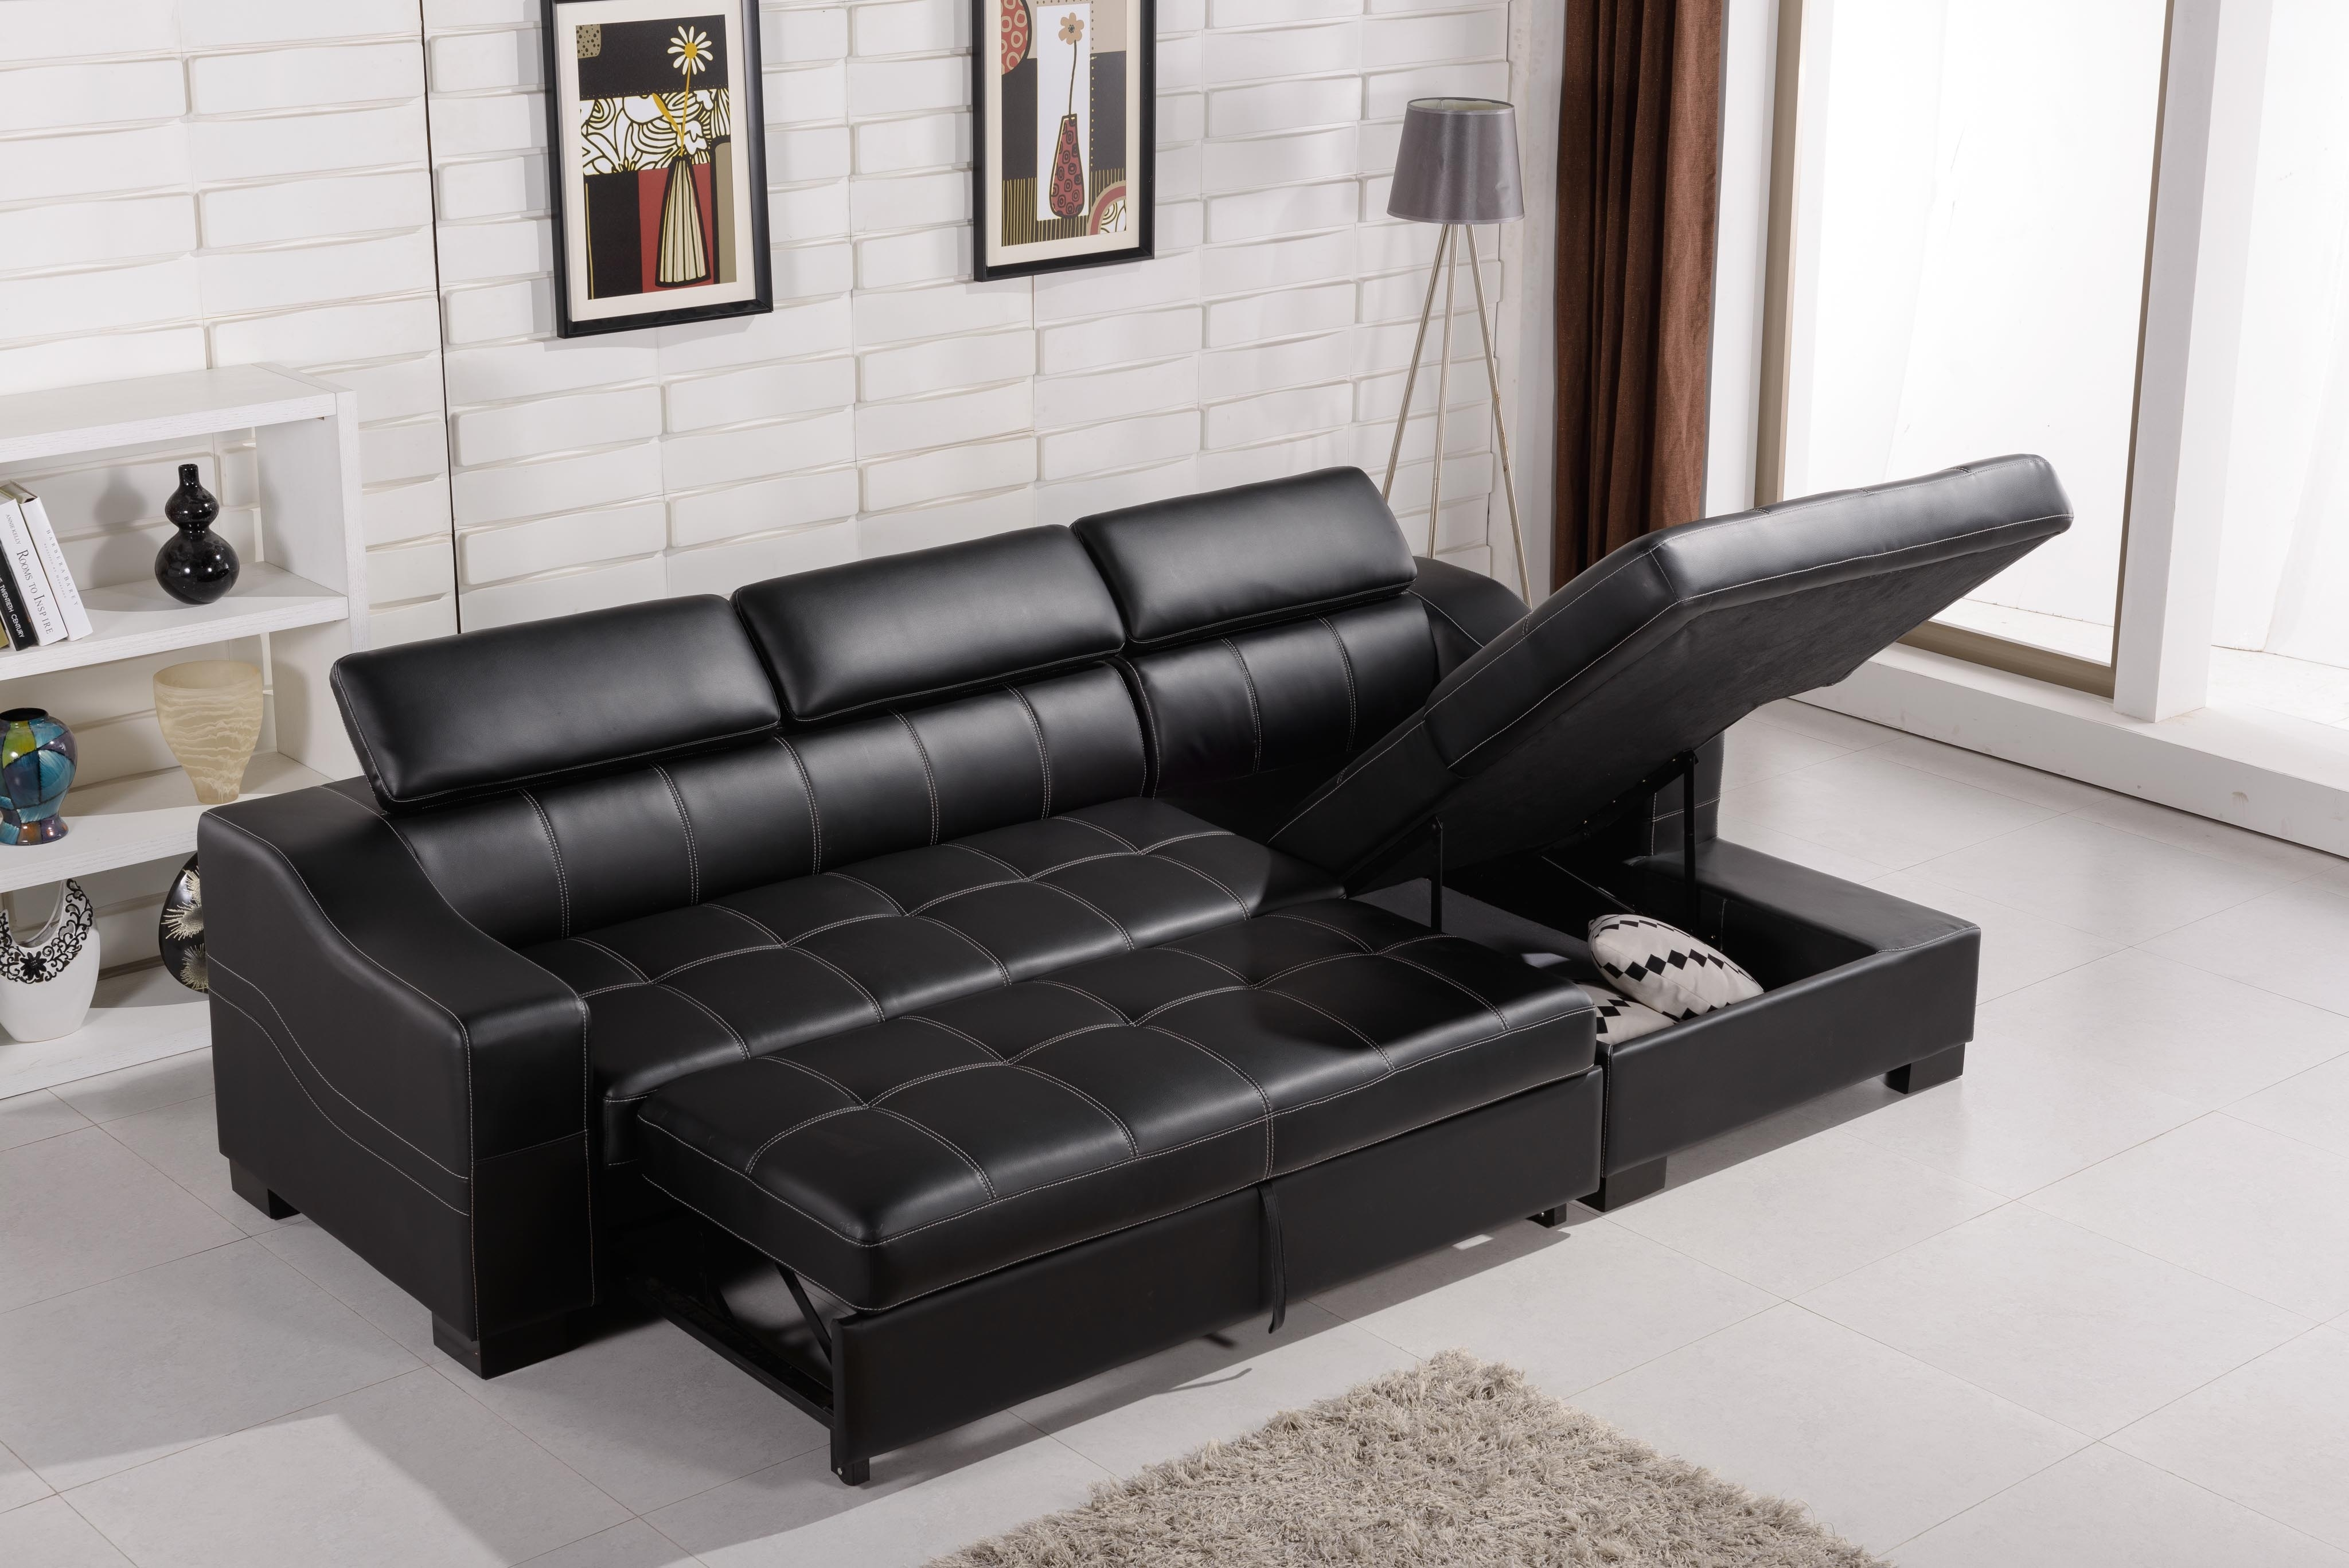 The Best Fashionable Design White Faux Leather Sectional Corner Of In Leather Sofas With Storage (View 3 of 10)